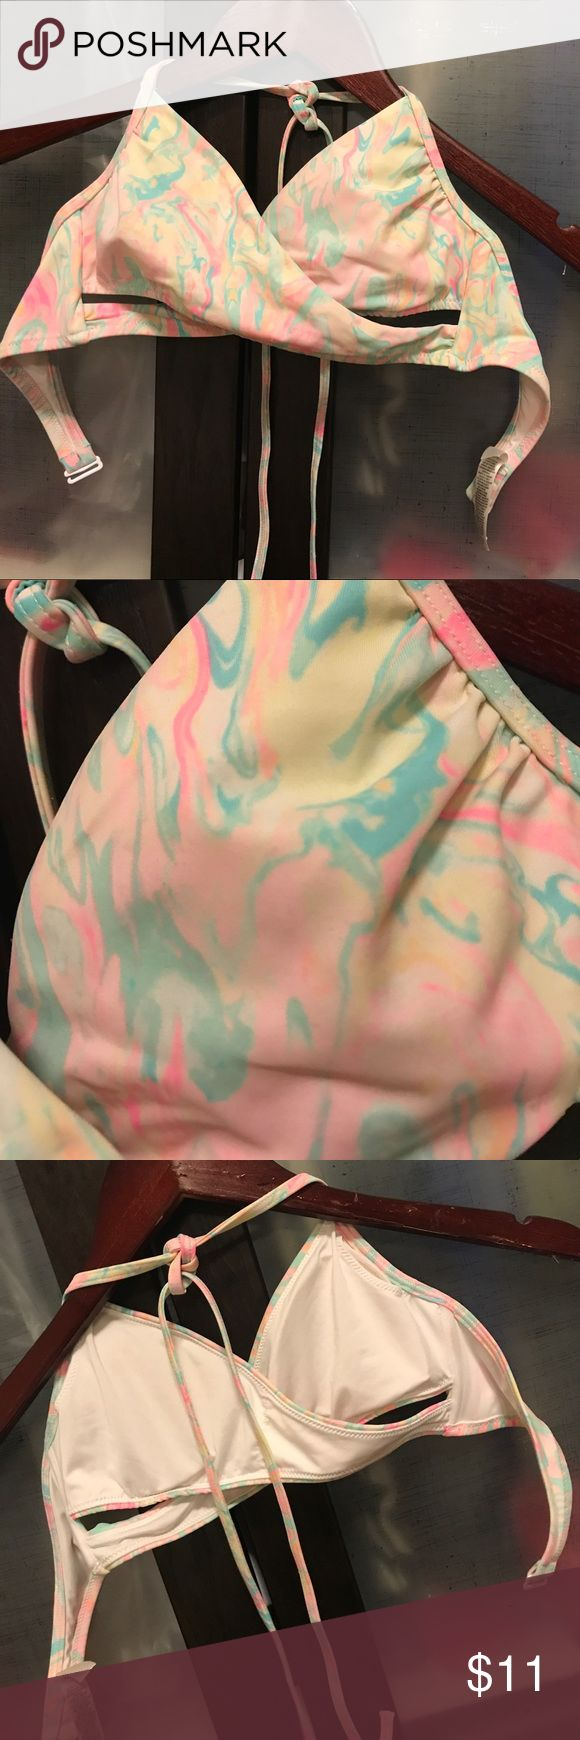 Victoria's Secret PINK crossed tie dye bikini top! This also comes with a free beauty/ skincare sample if you are within my first five orders!!This is a size small this is a super pretty tie dyed design bikini top  and this has been worn before the cut outs on the bottom are super flattering when on!!:) PINK Victoria's Secret Swim Bikinis